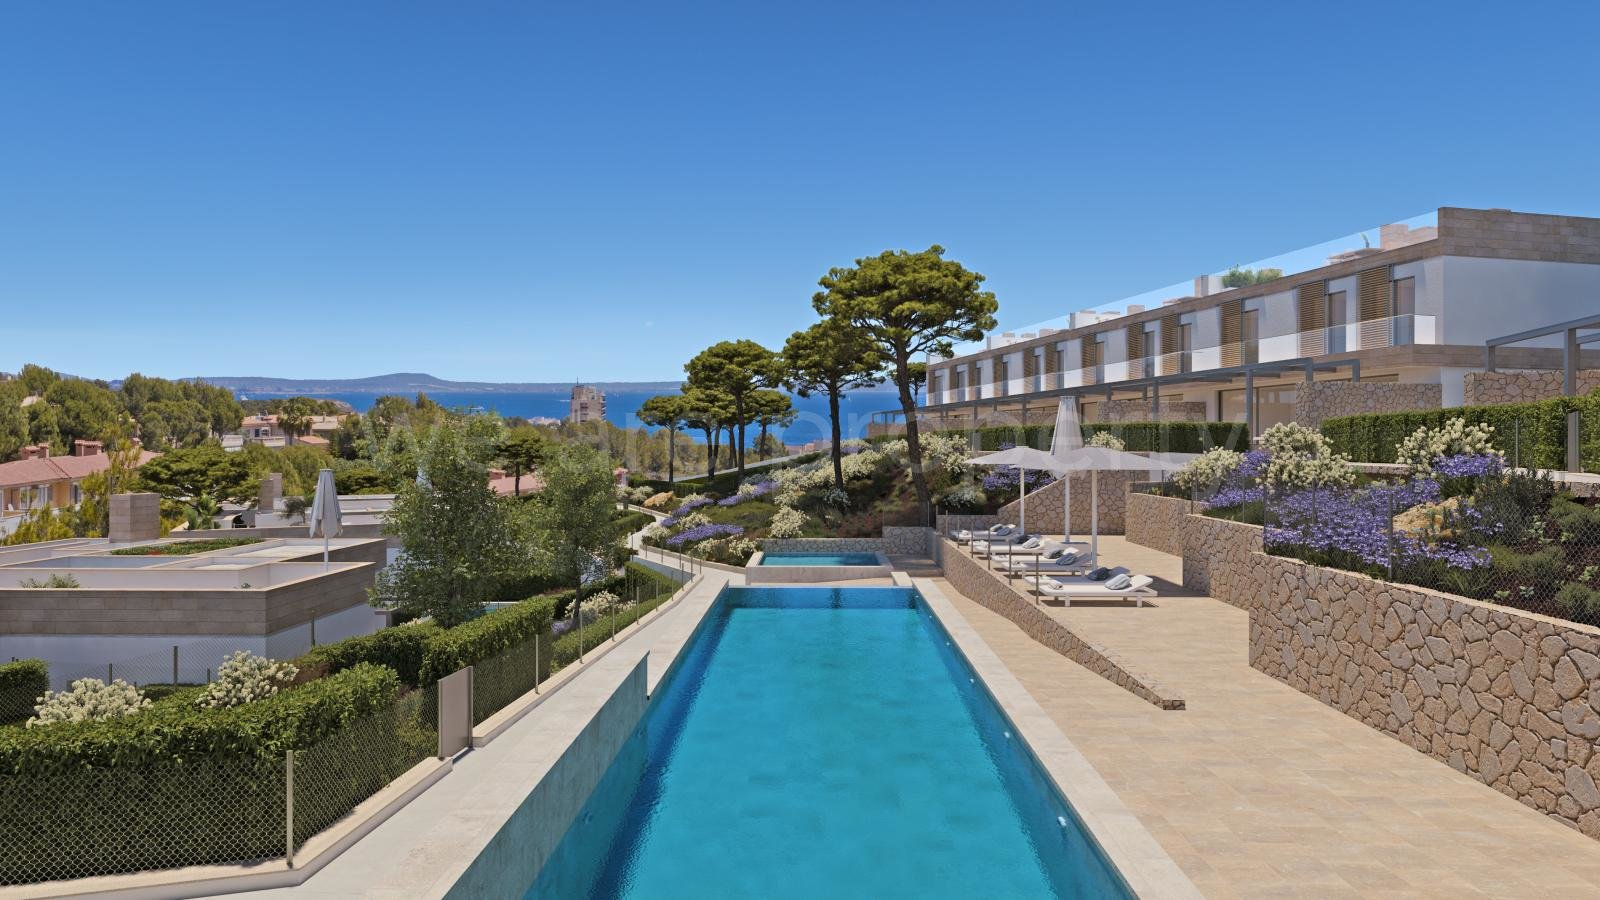 Unique homes with a Mediterranean feeling in Cala Vinyes